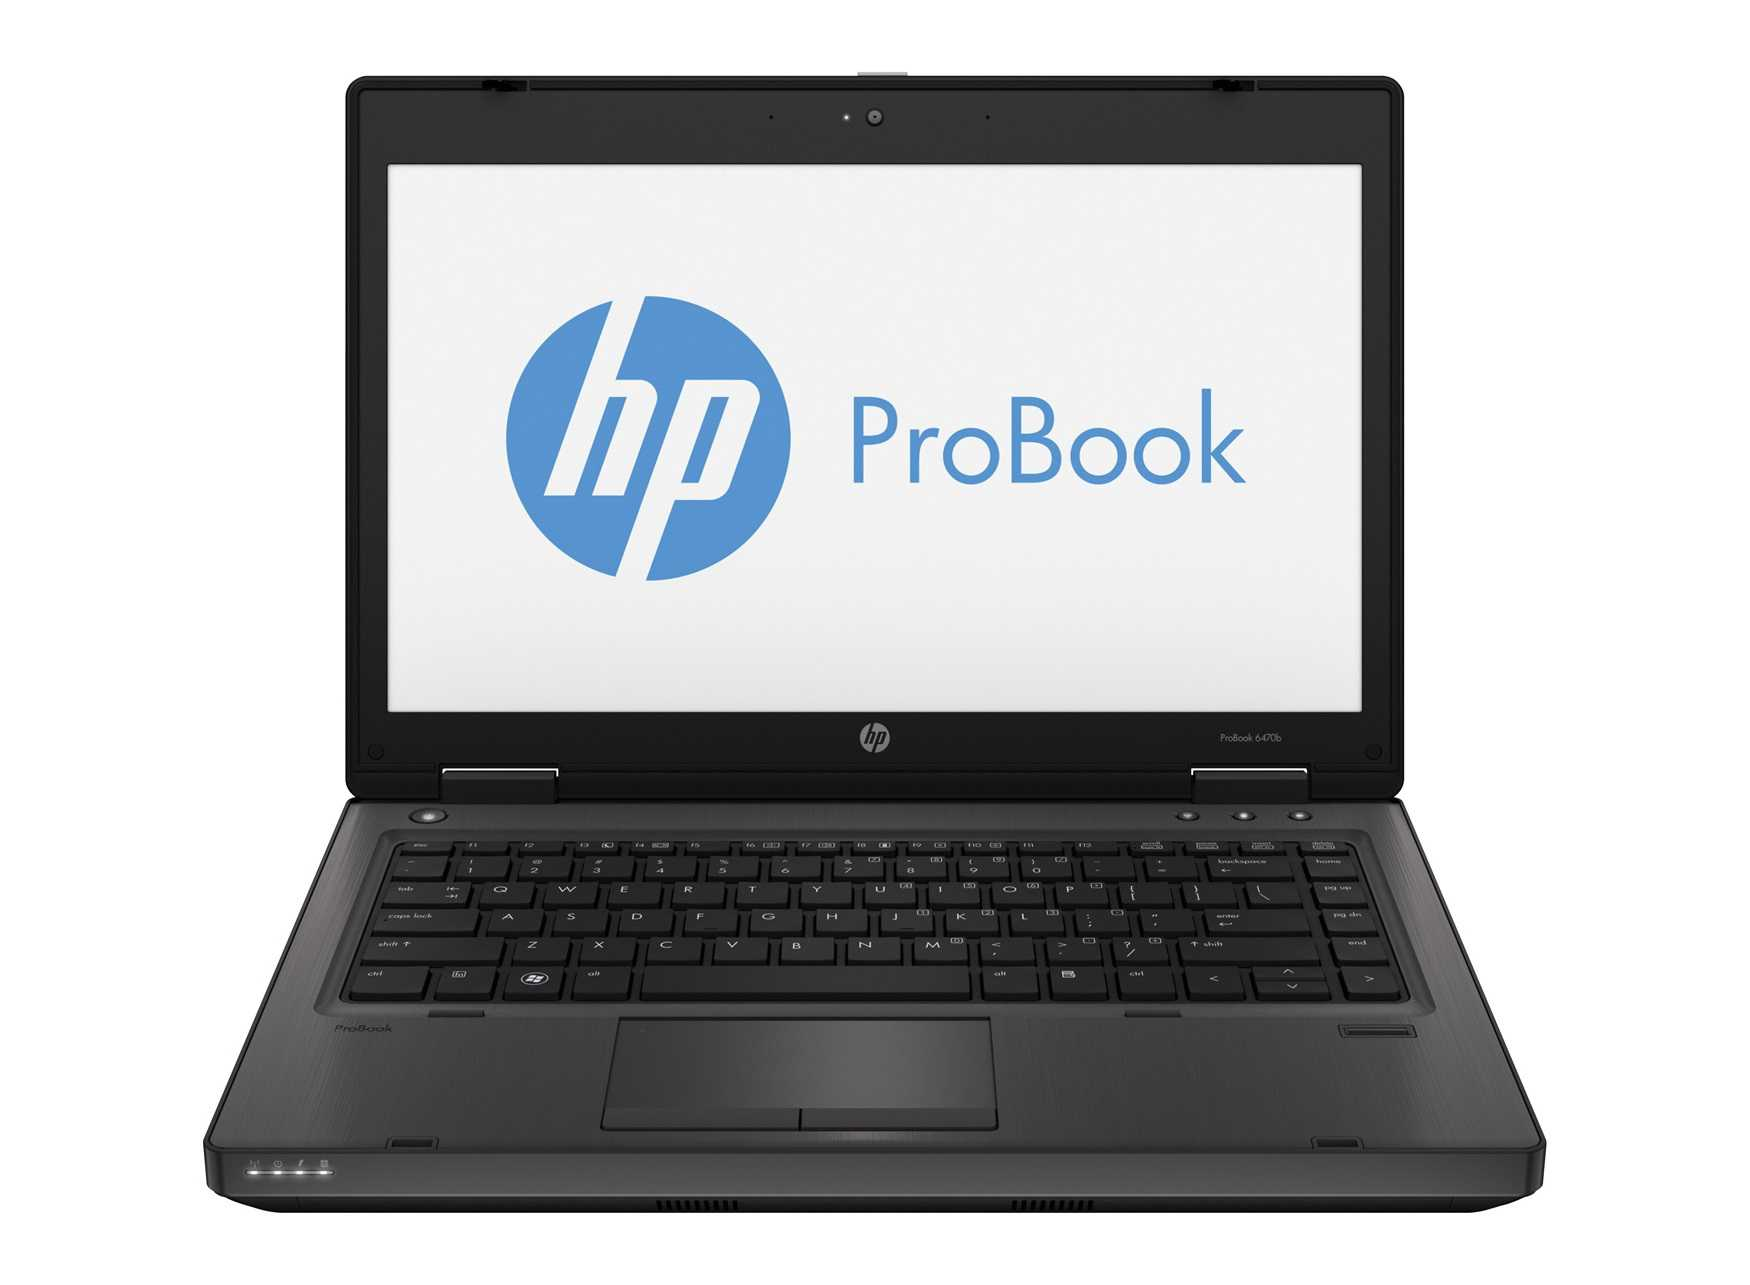 REFURBISHED HP 6470B Probook 14' B-Grade I3-3110M 2.4GHZ 4GB 320GB Windows 7 Professional (No Webcam)